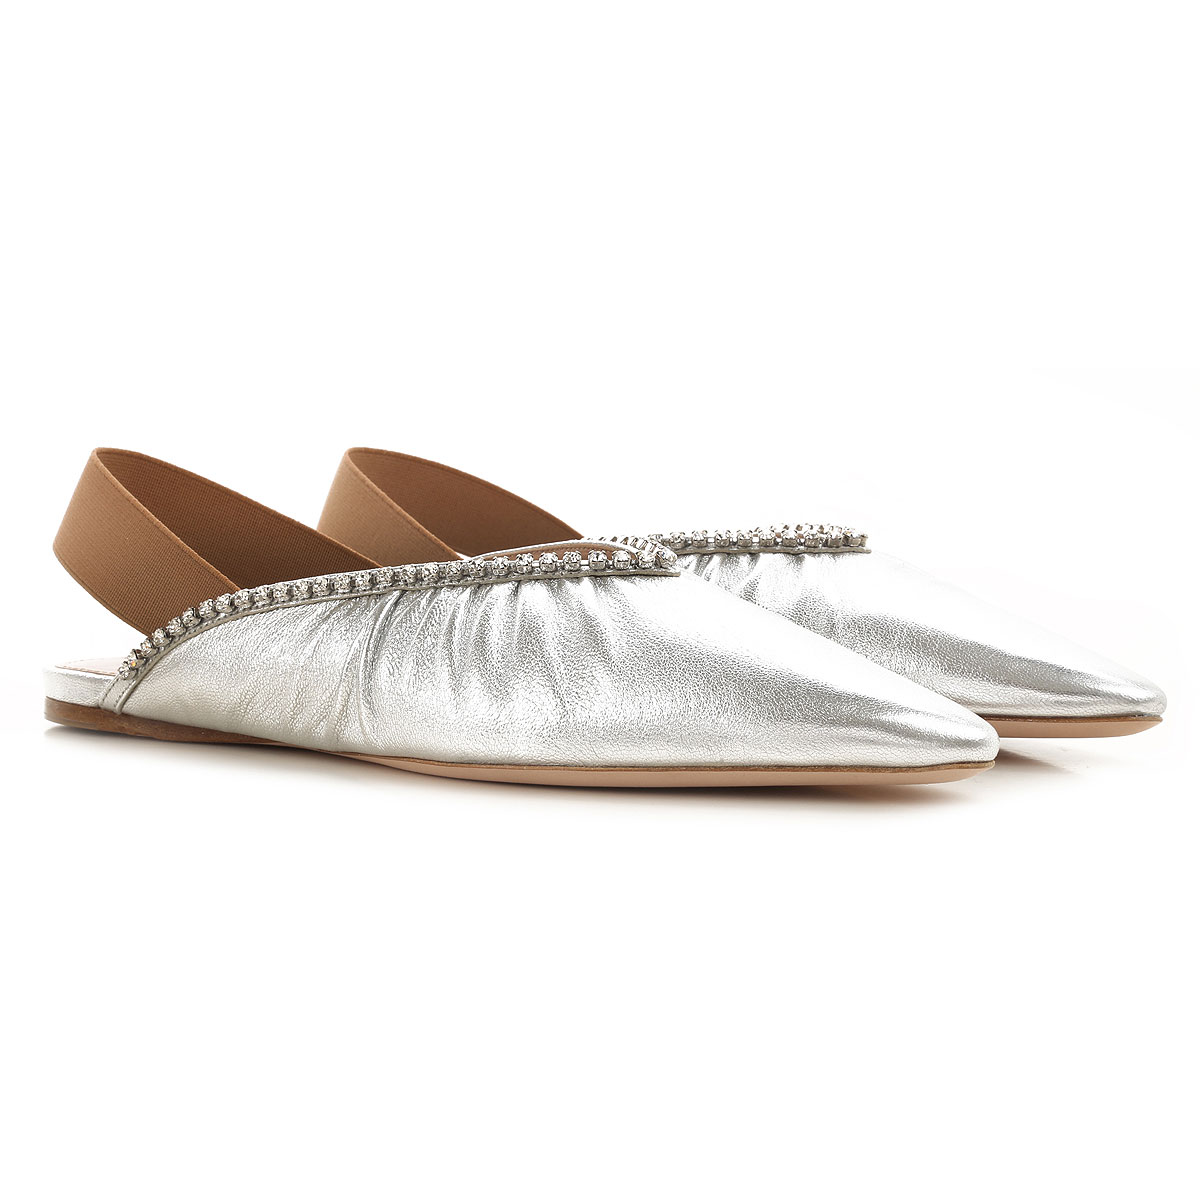 Miu Miu Ballet Flats Ballerina Shoes for Women On Sale, Silver, Leather, 2019, 10 6 7 7.5 8 8.5 9